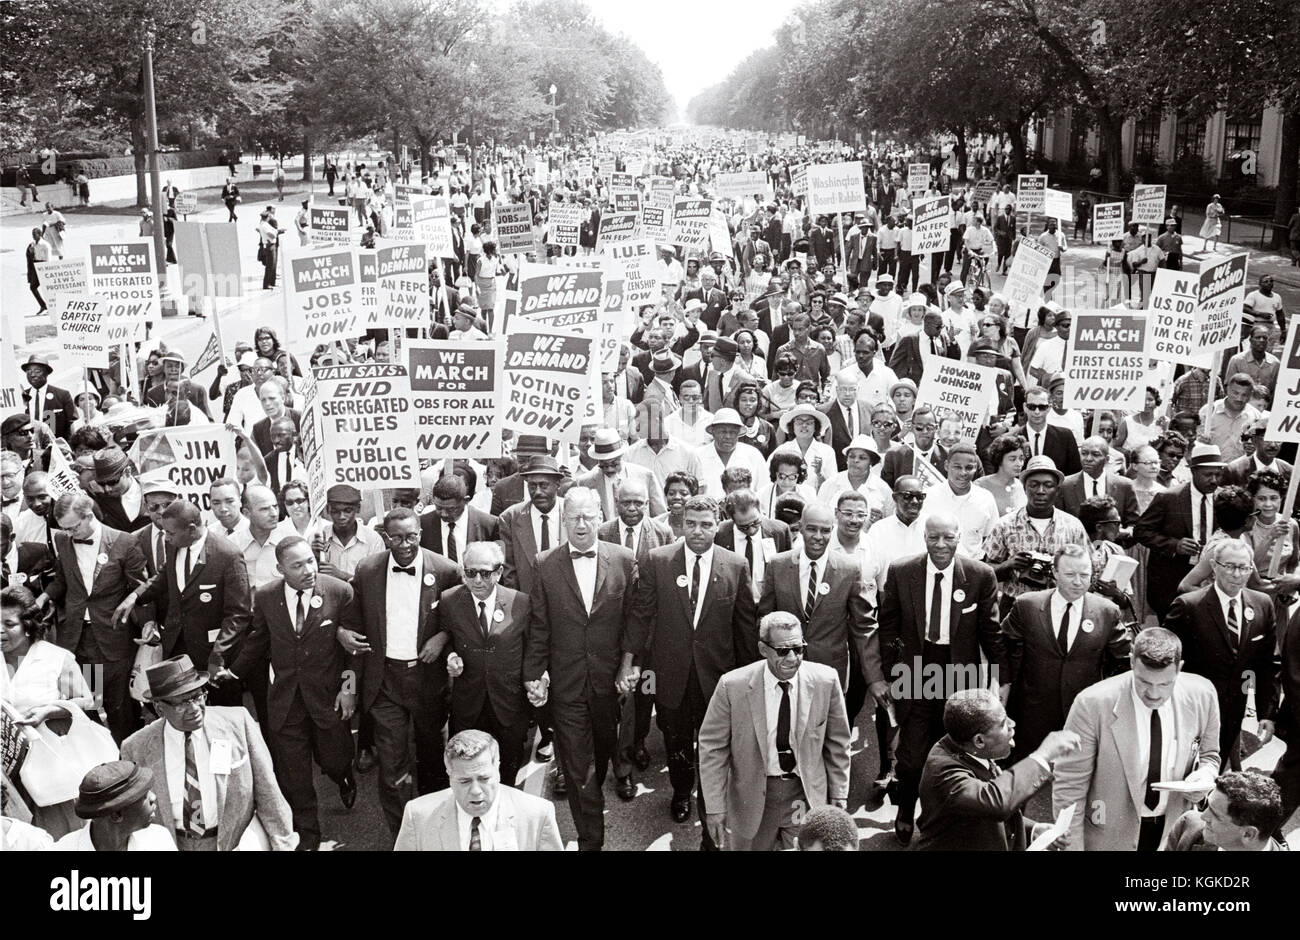 Leaders Of The March On Washington For Jobs And